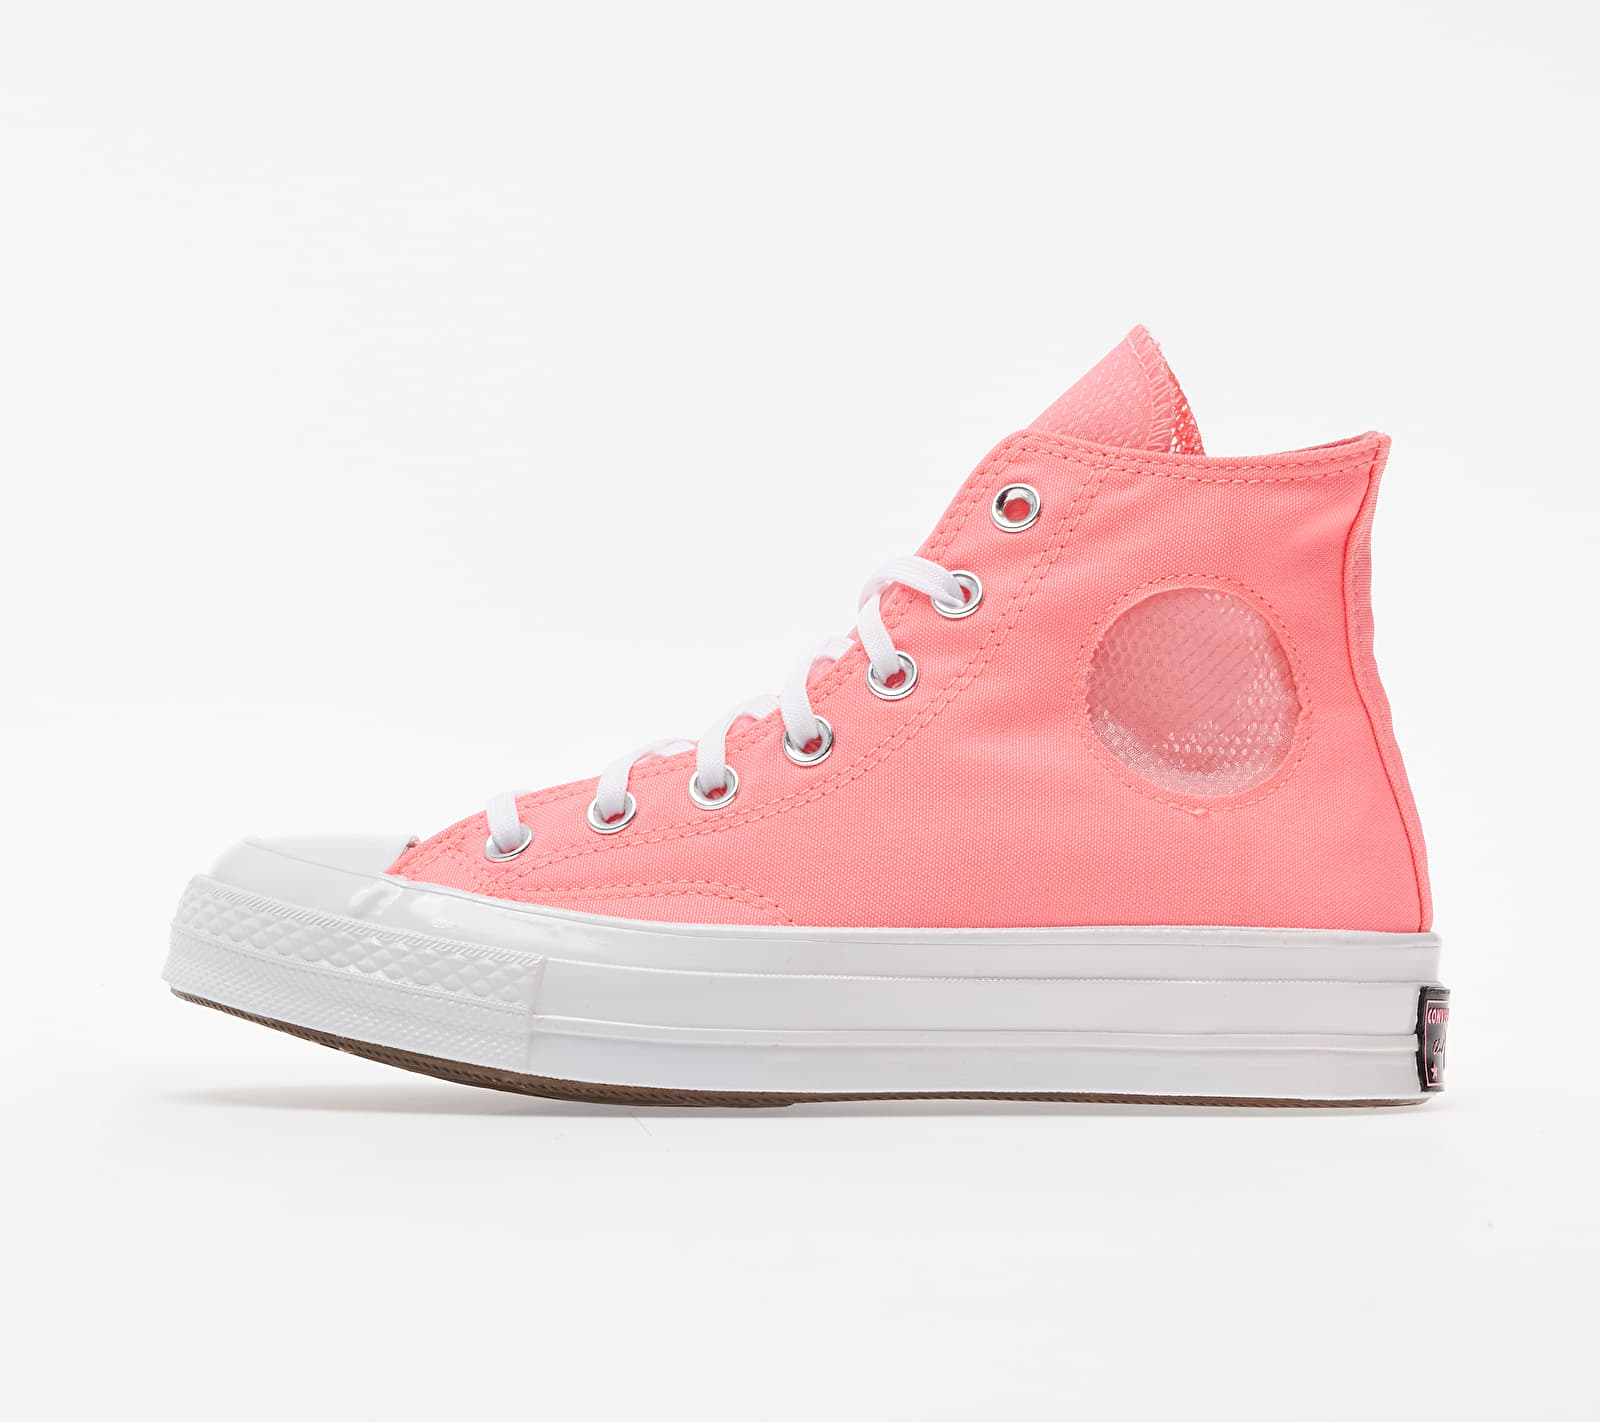 Converse Chuck 70 Hi Electric Blush/ Egret 167677C